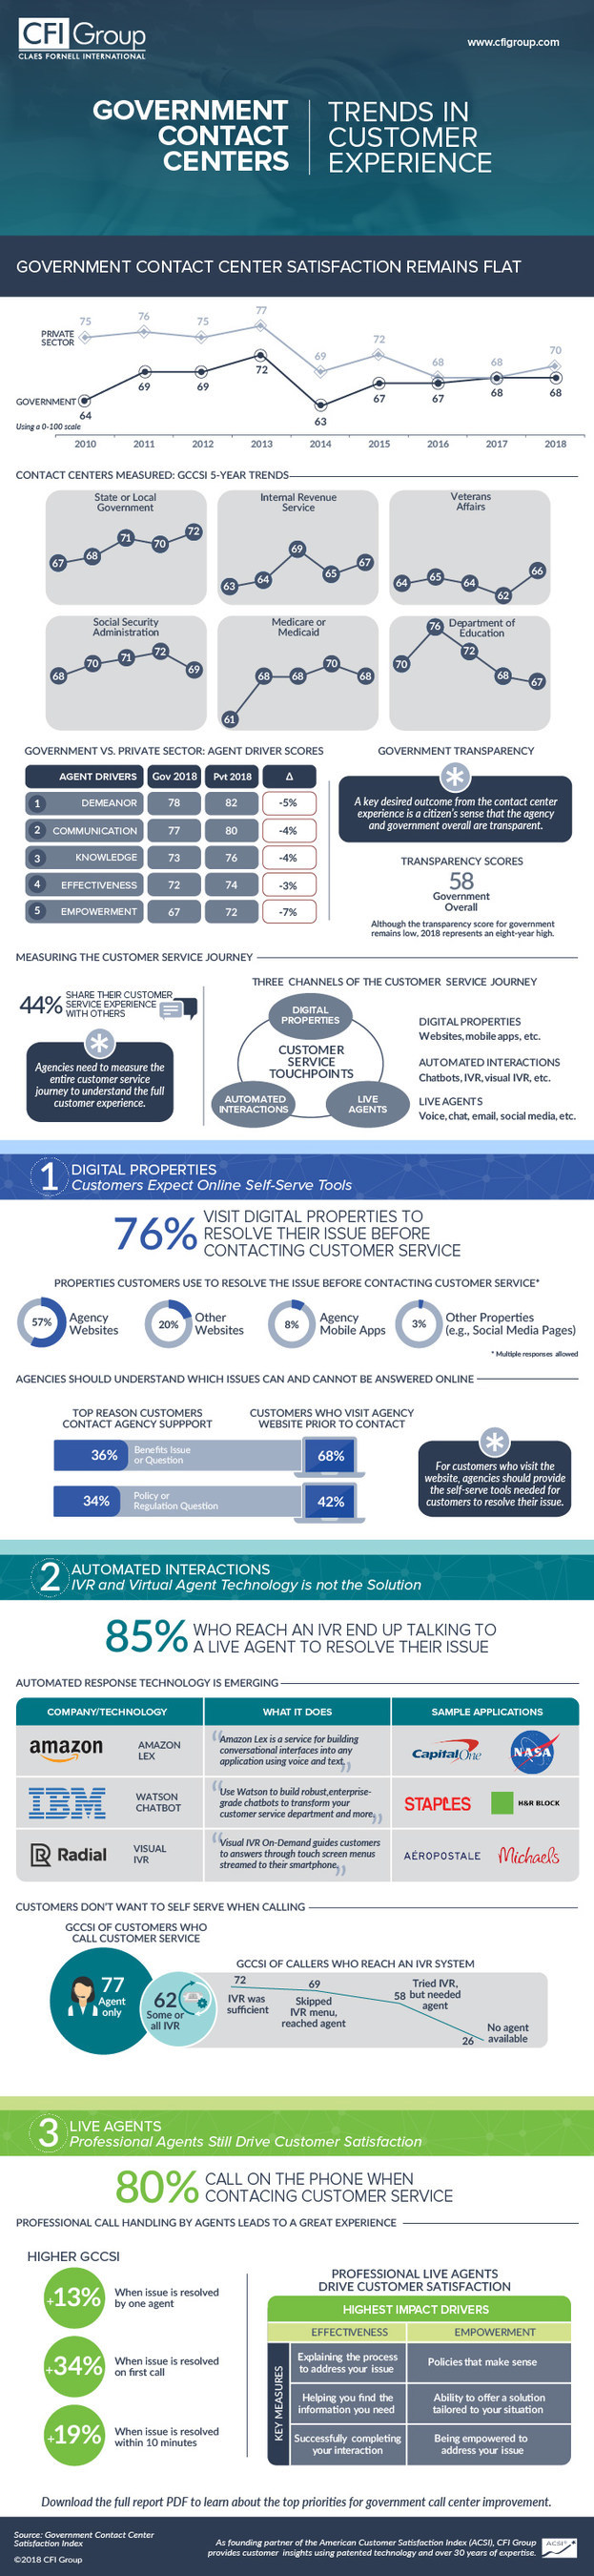 Government Contact Center Satisfaction Index (GCCSI) 2018 Infographic